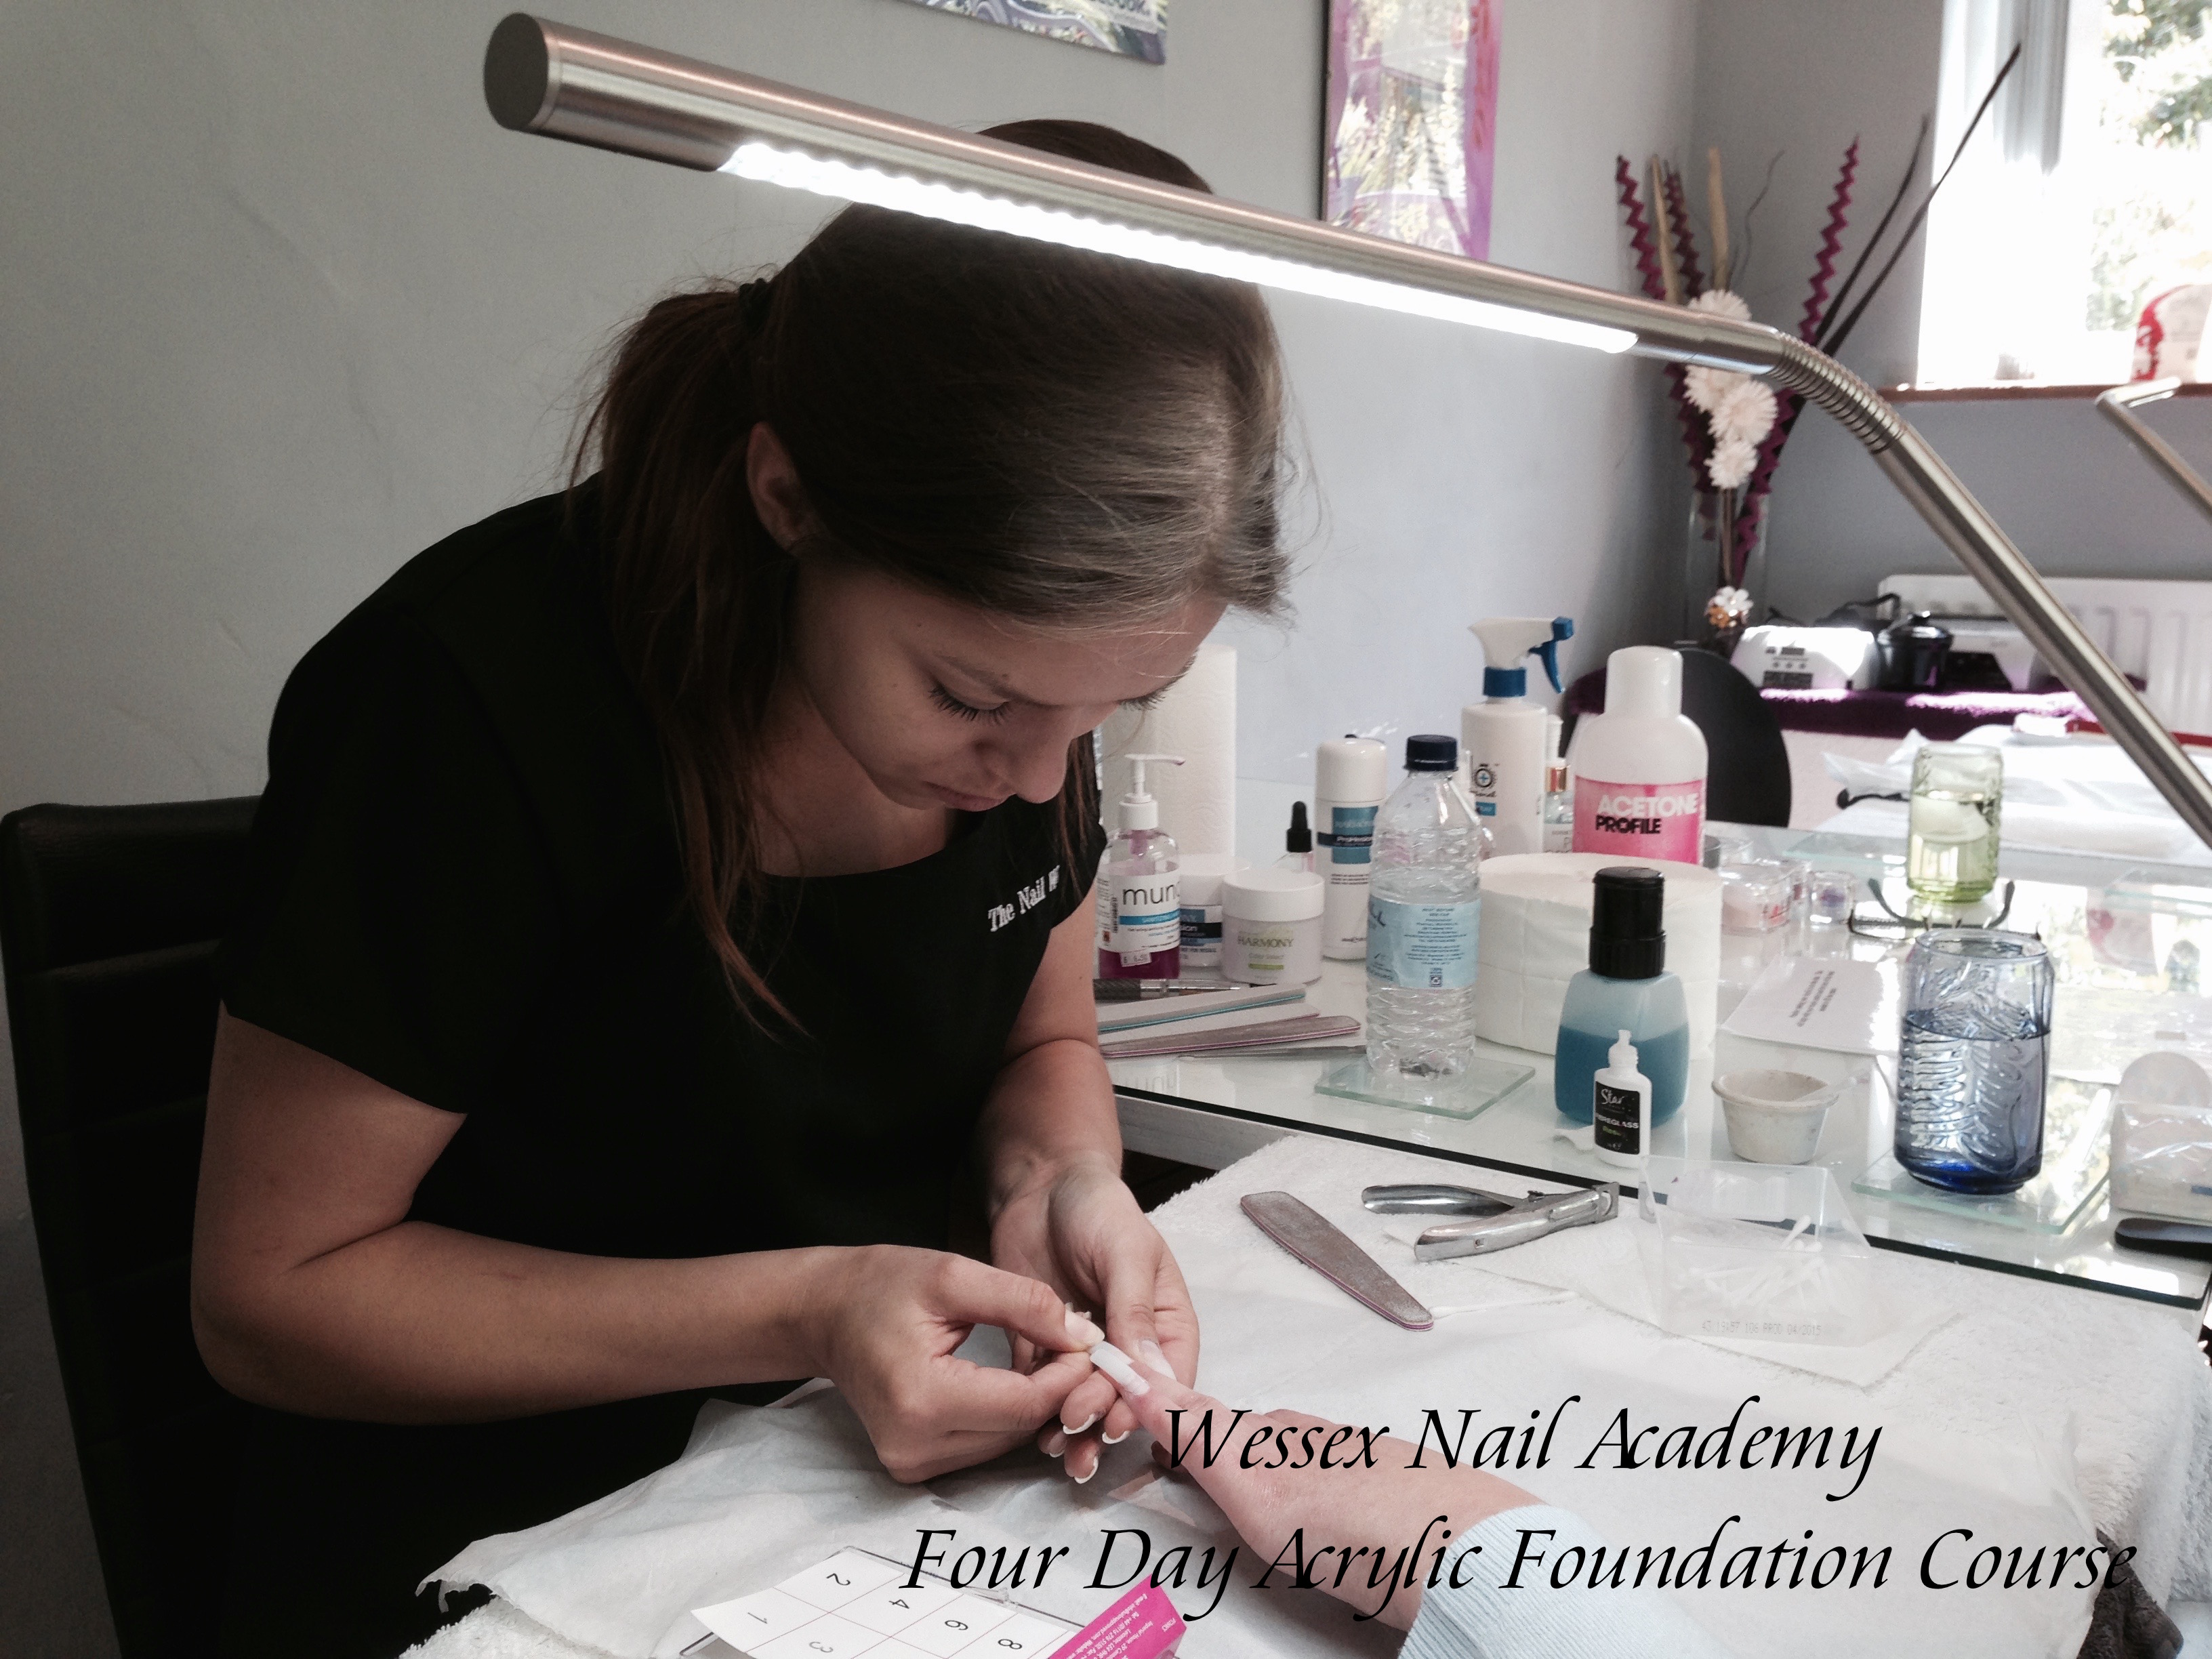 Four Day Acrylic Foundation Course,Nail extension training, nail training course, Wessex Nail Academy Okeford Fitzpaine, Dorset